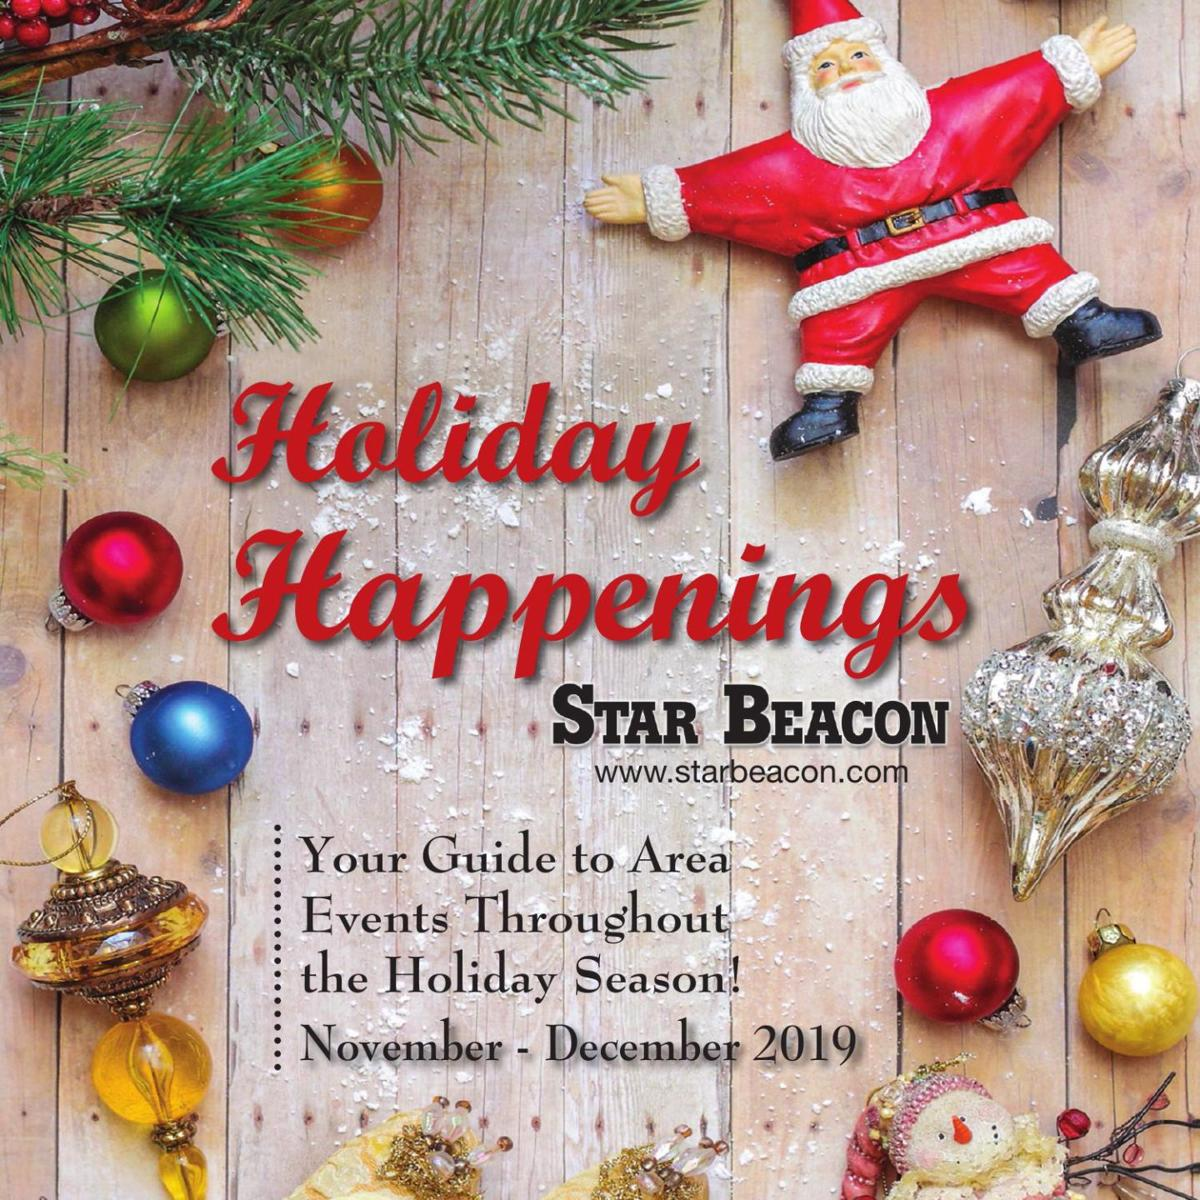 2019 Holiday Happenings